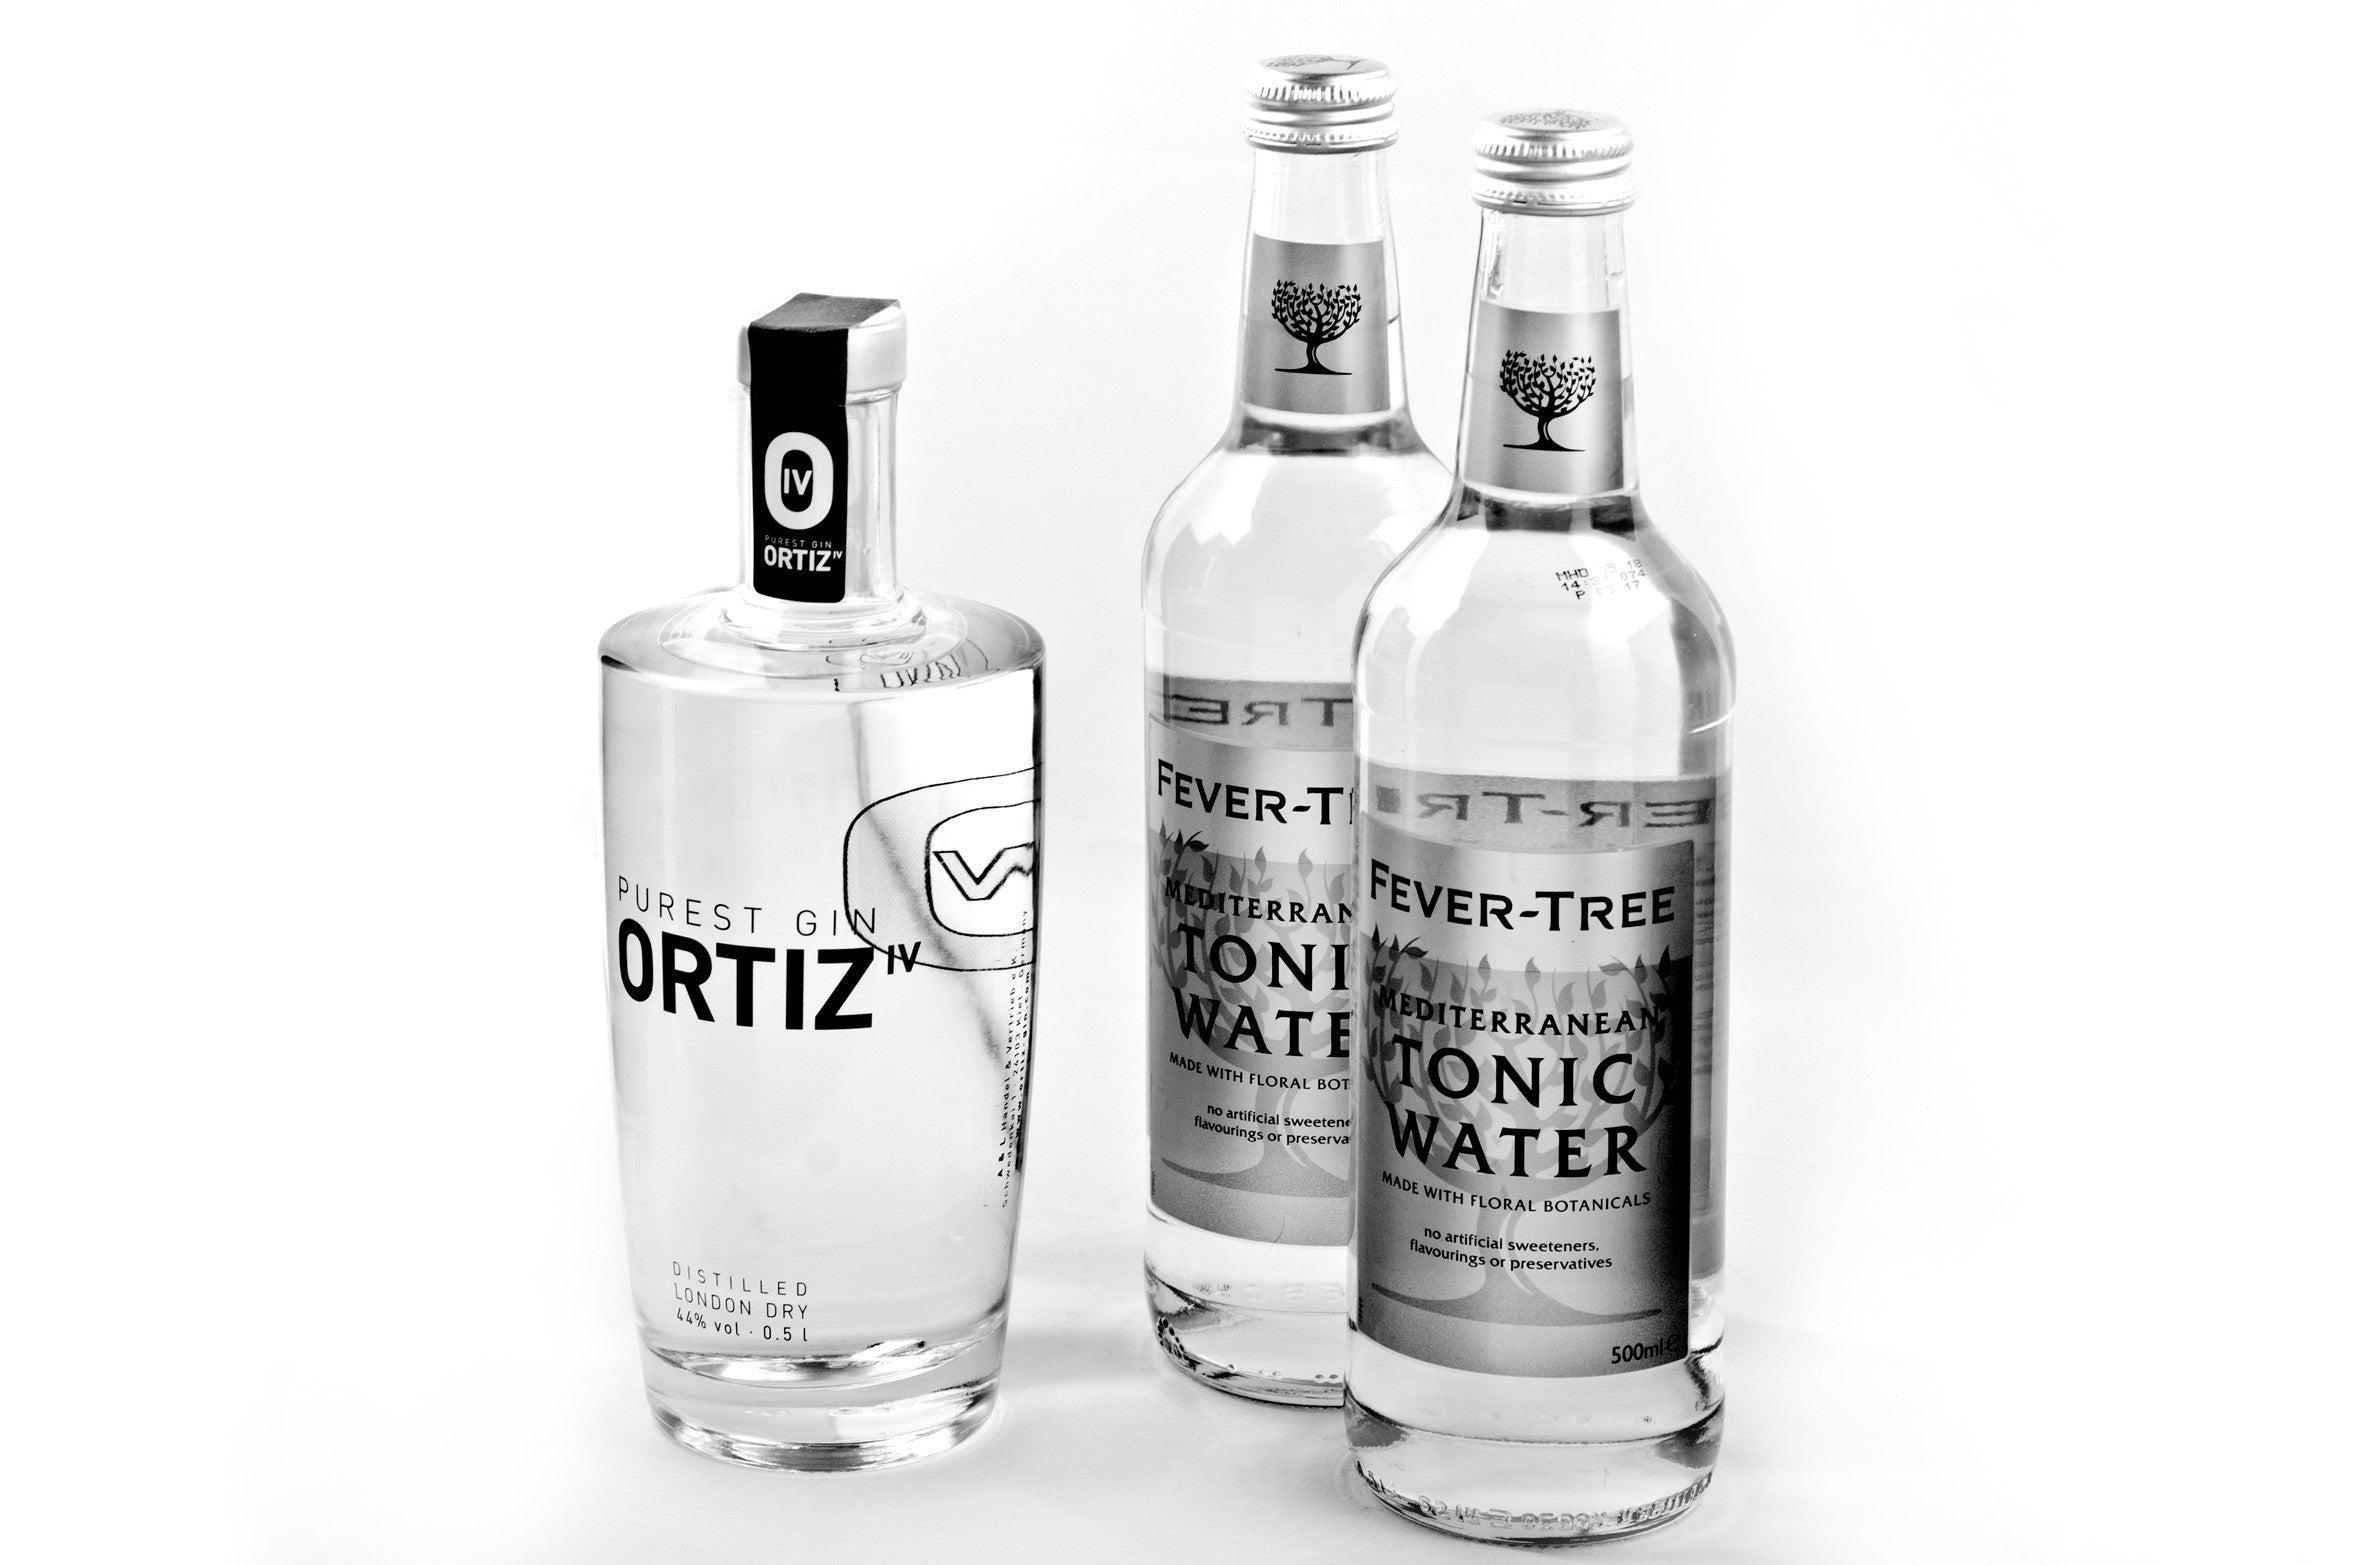 1 bottle ORTIZ IV PUREST GIN 0.5l incl. 2 bottles Fever Tree Tonic 0.5l